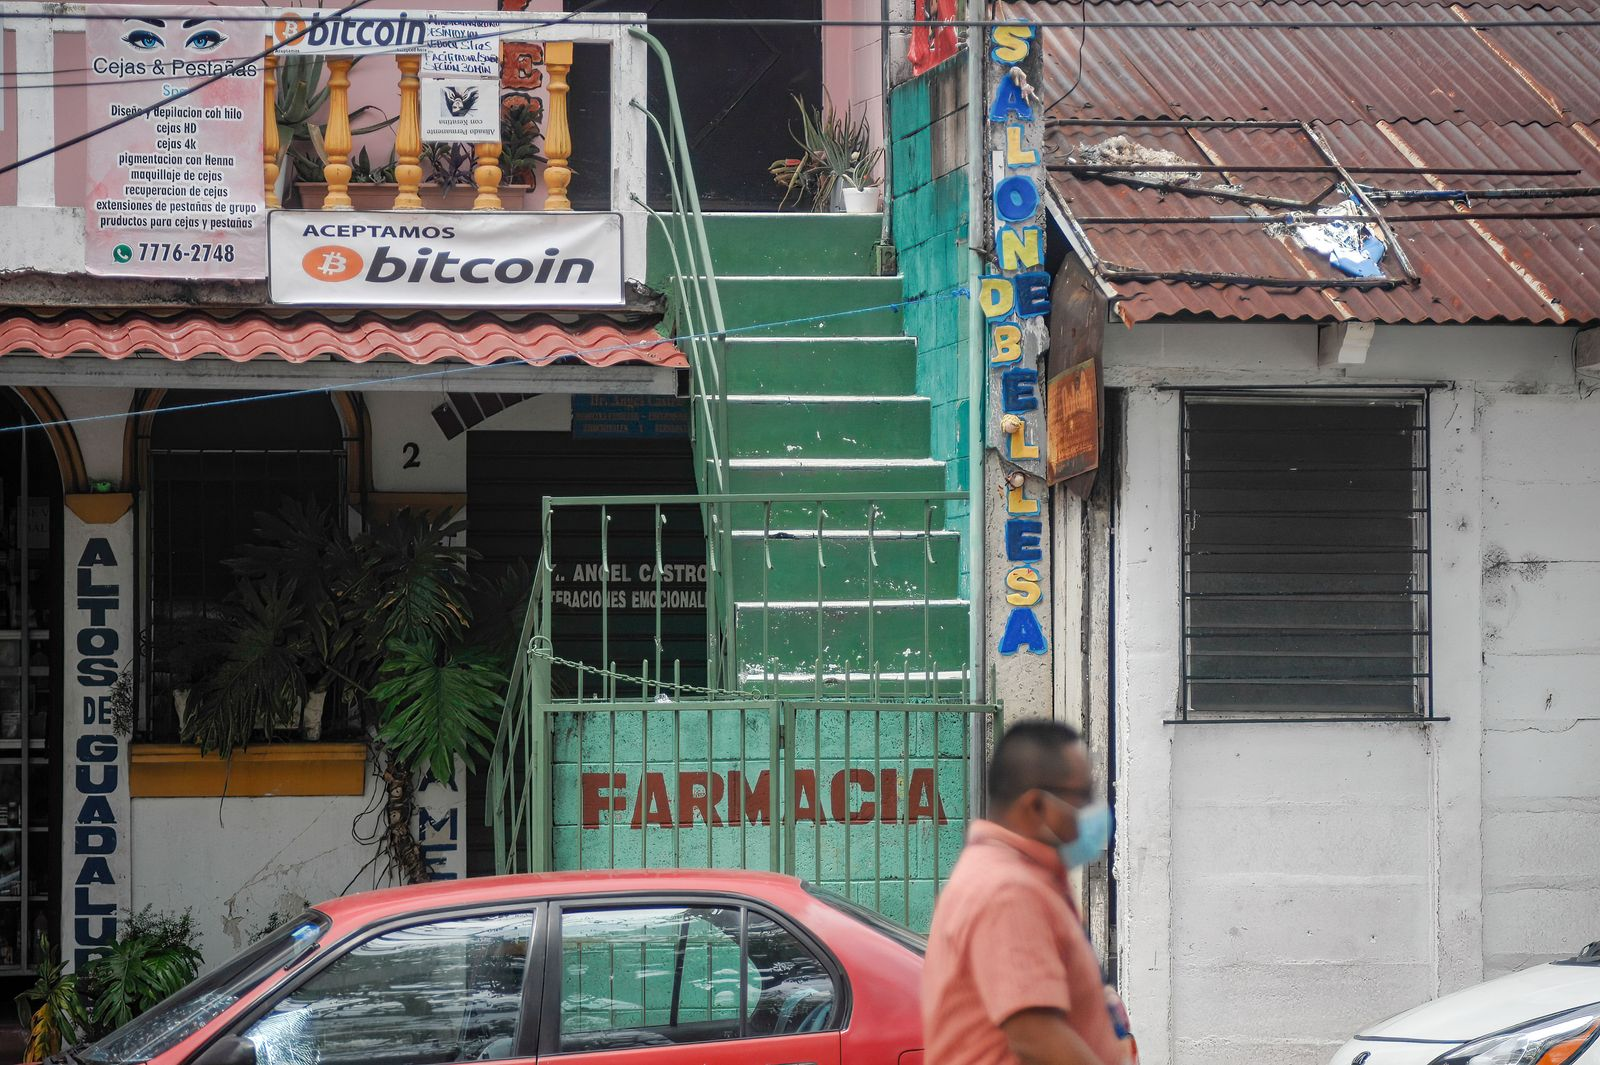 A man passes by a local business that accepts bitcoin as a